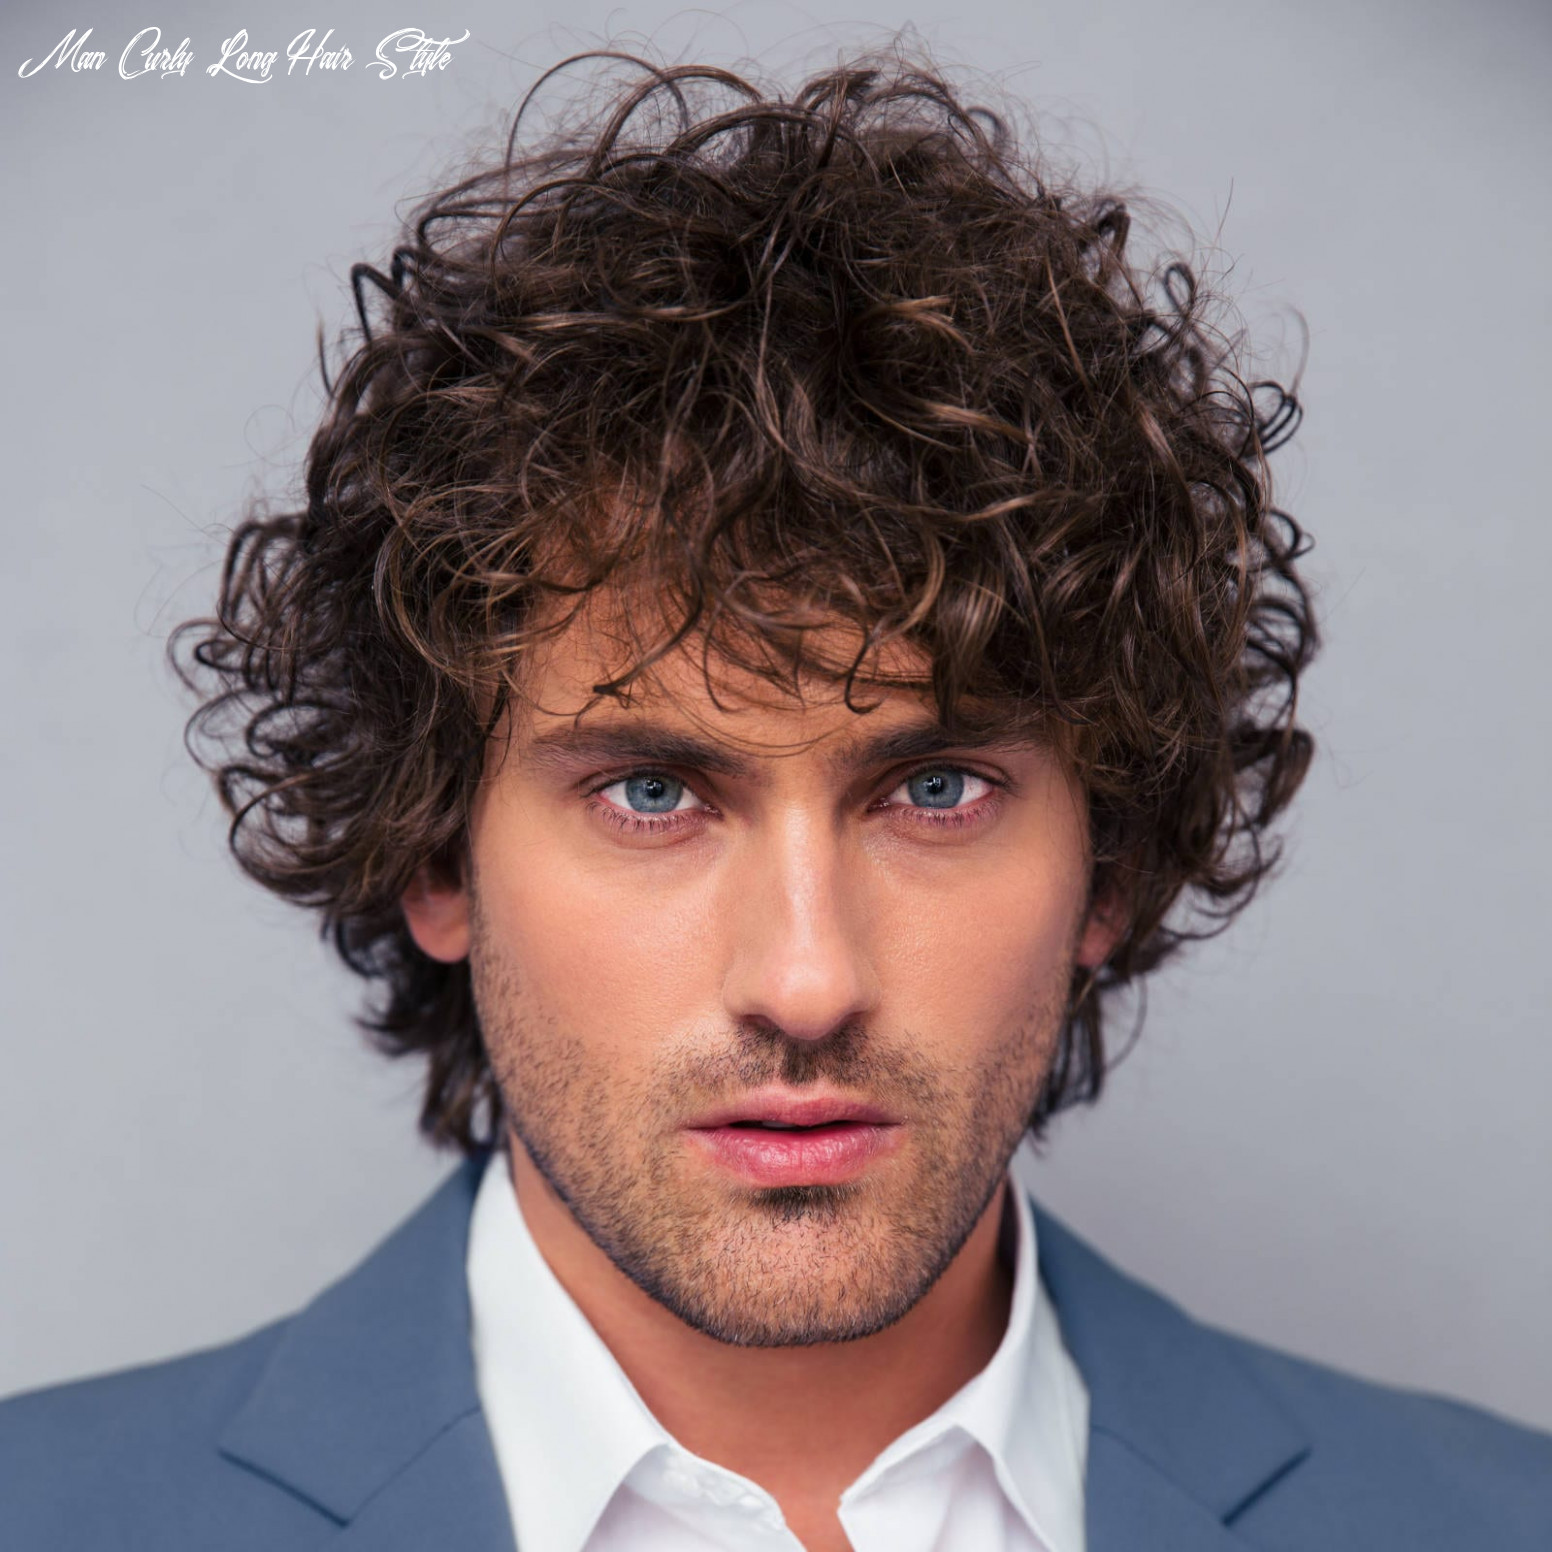 The 12 best curly hairstyles for men | improb man curly long hair style